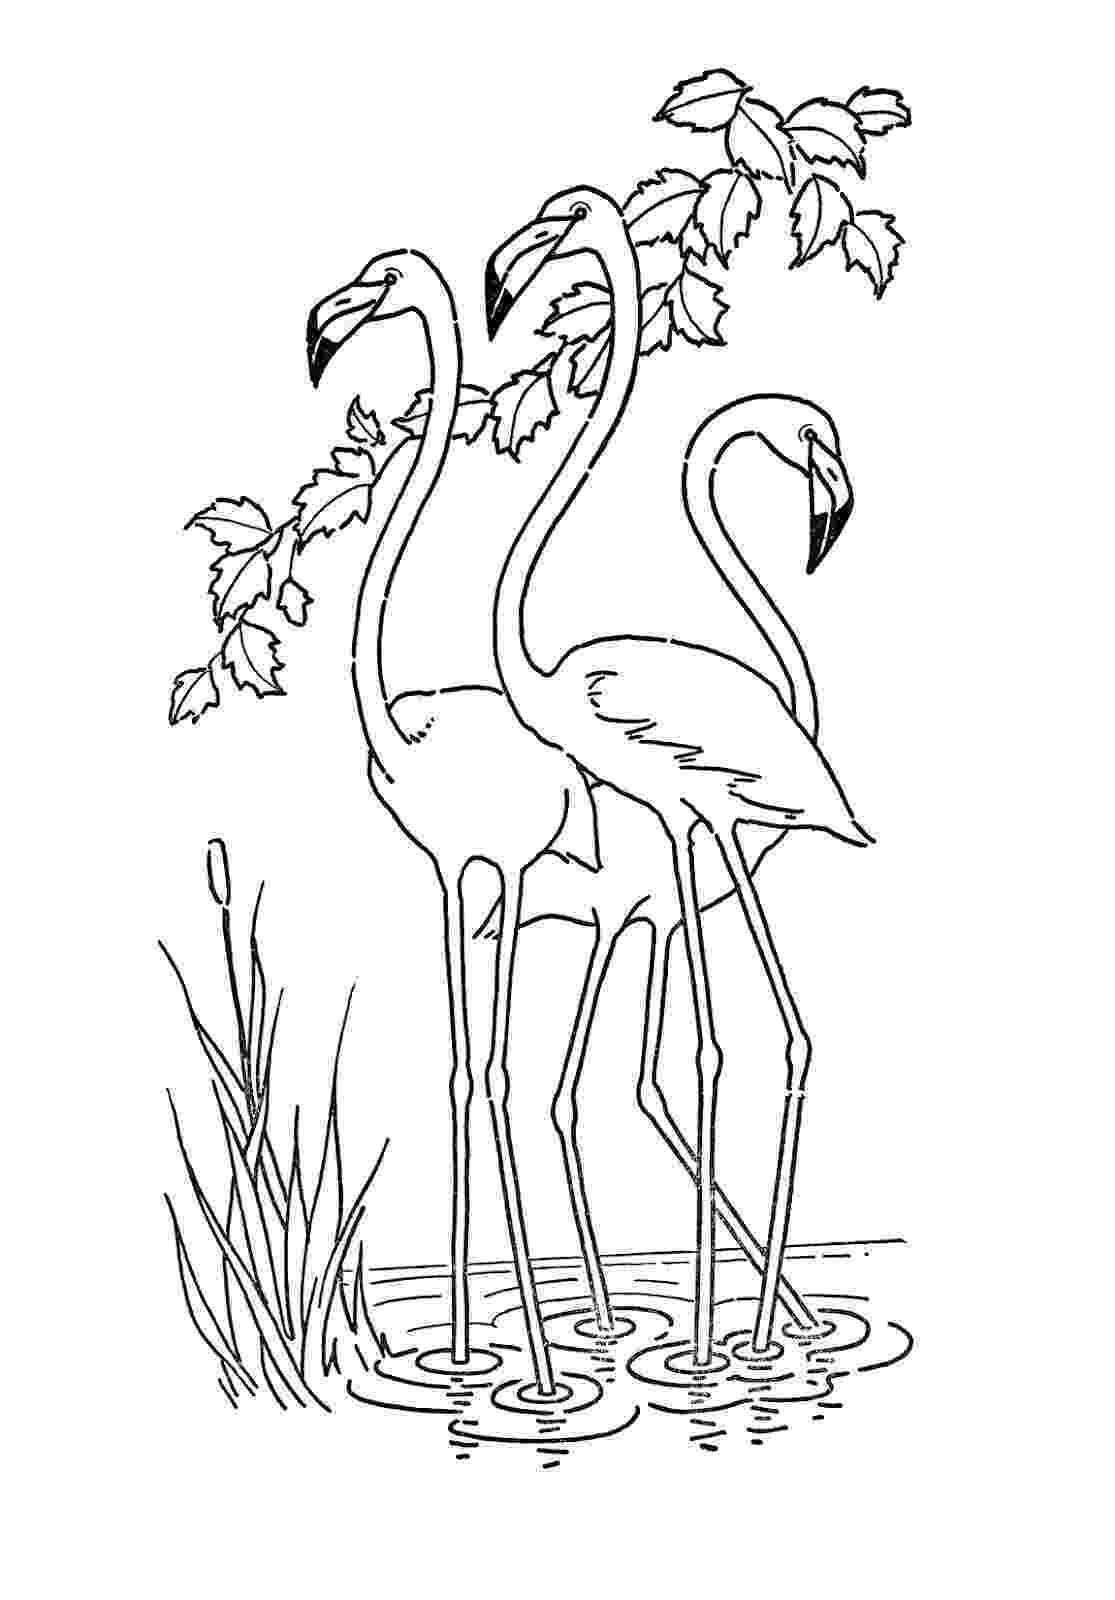 coloring pages for free fantasy coloring pages to download and print for free free coloring pages for